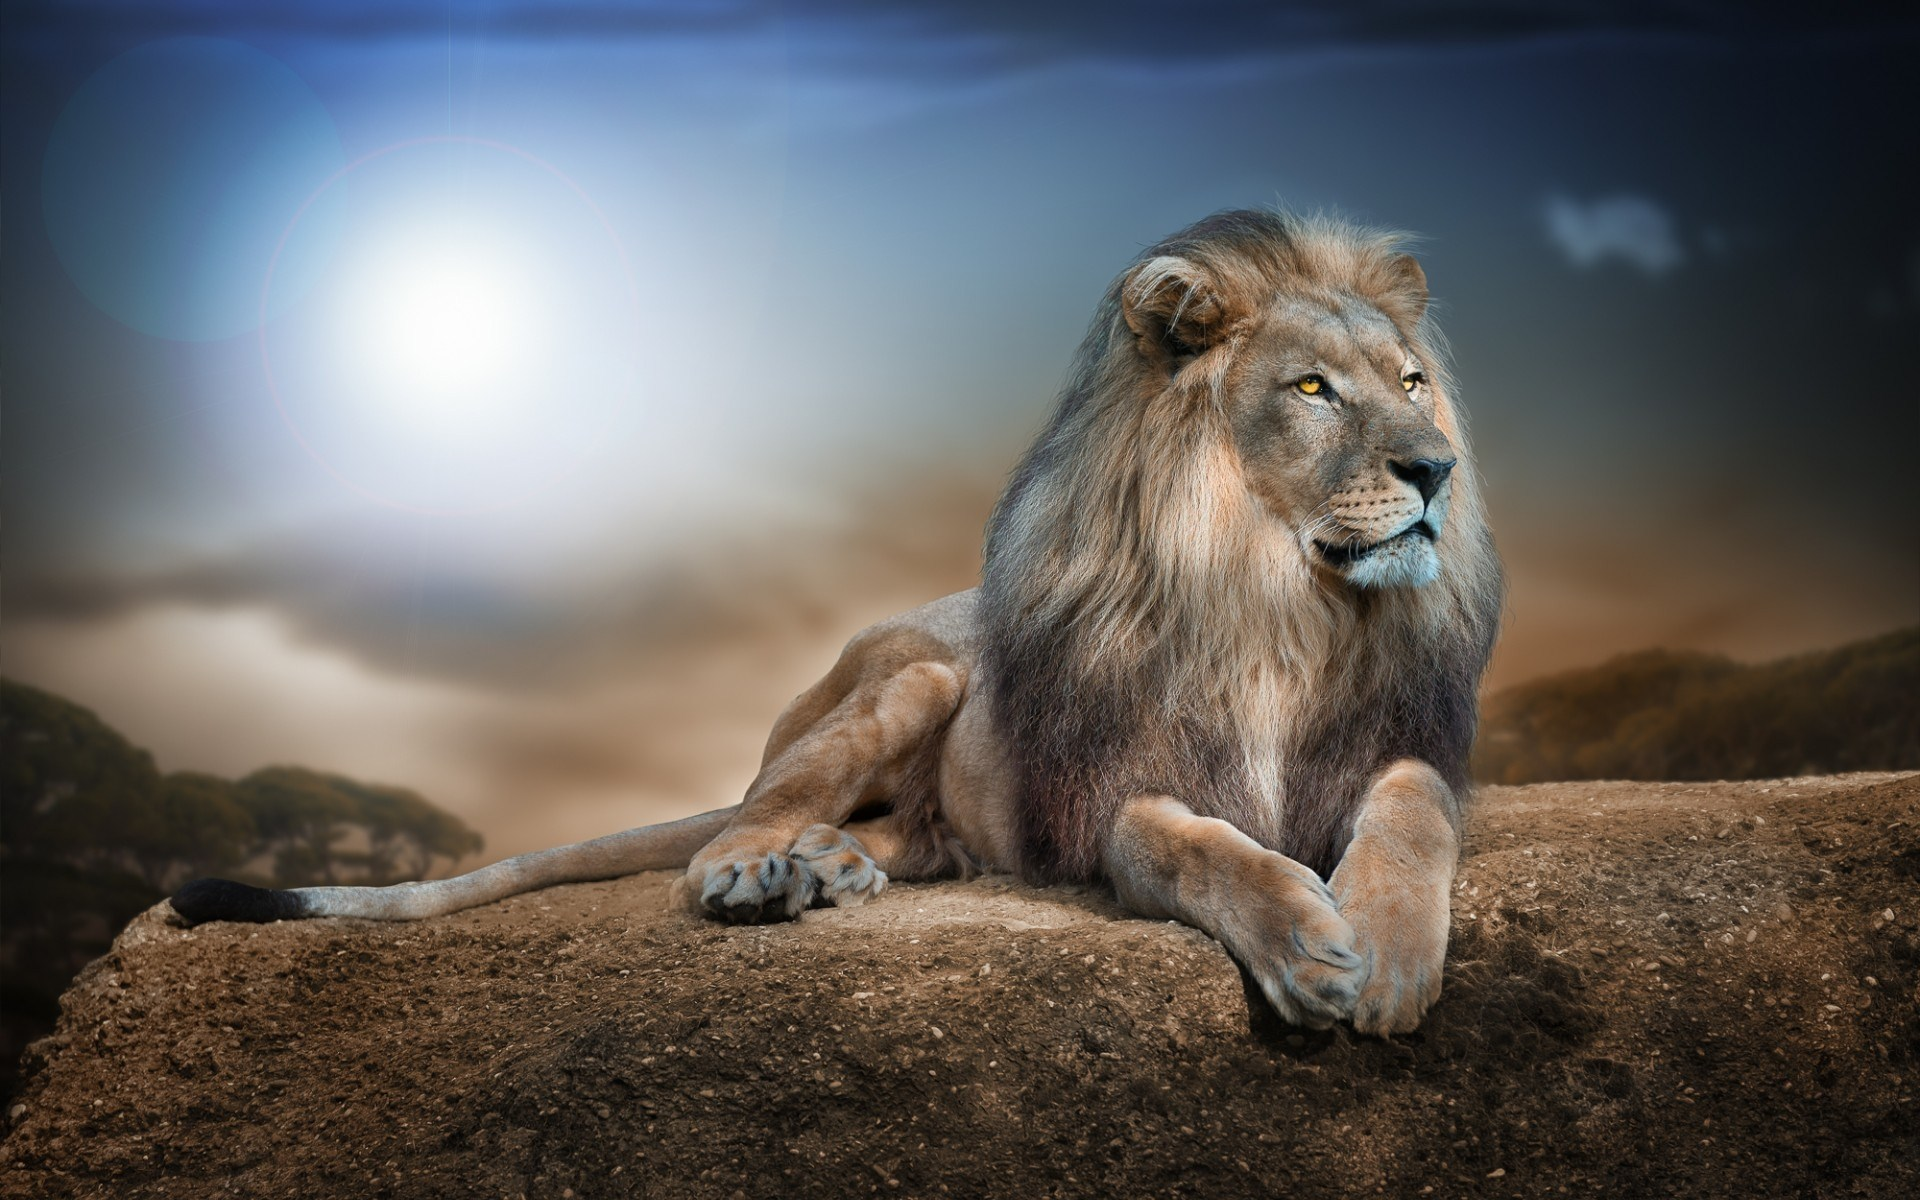 Lion Hd Wallpaper Background Image 1920x1200 Id 487131